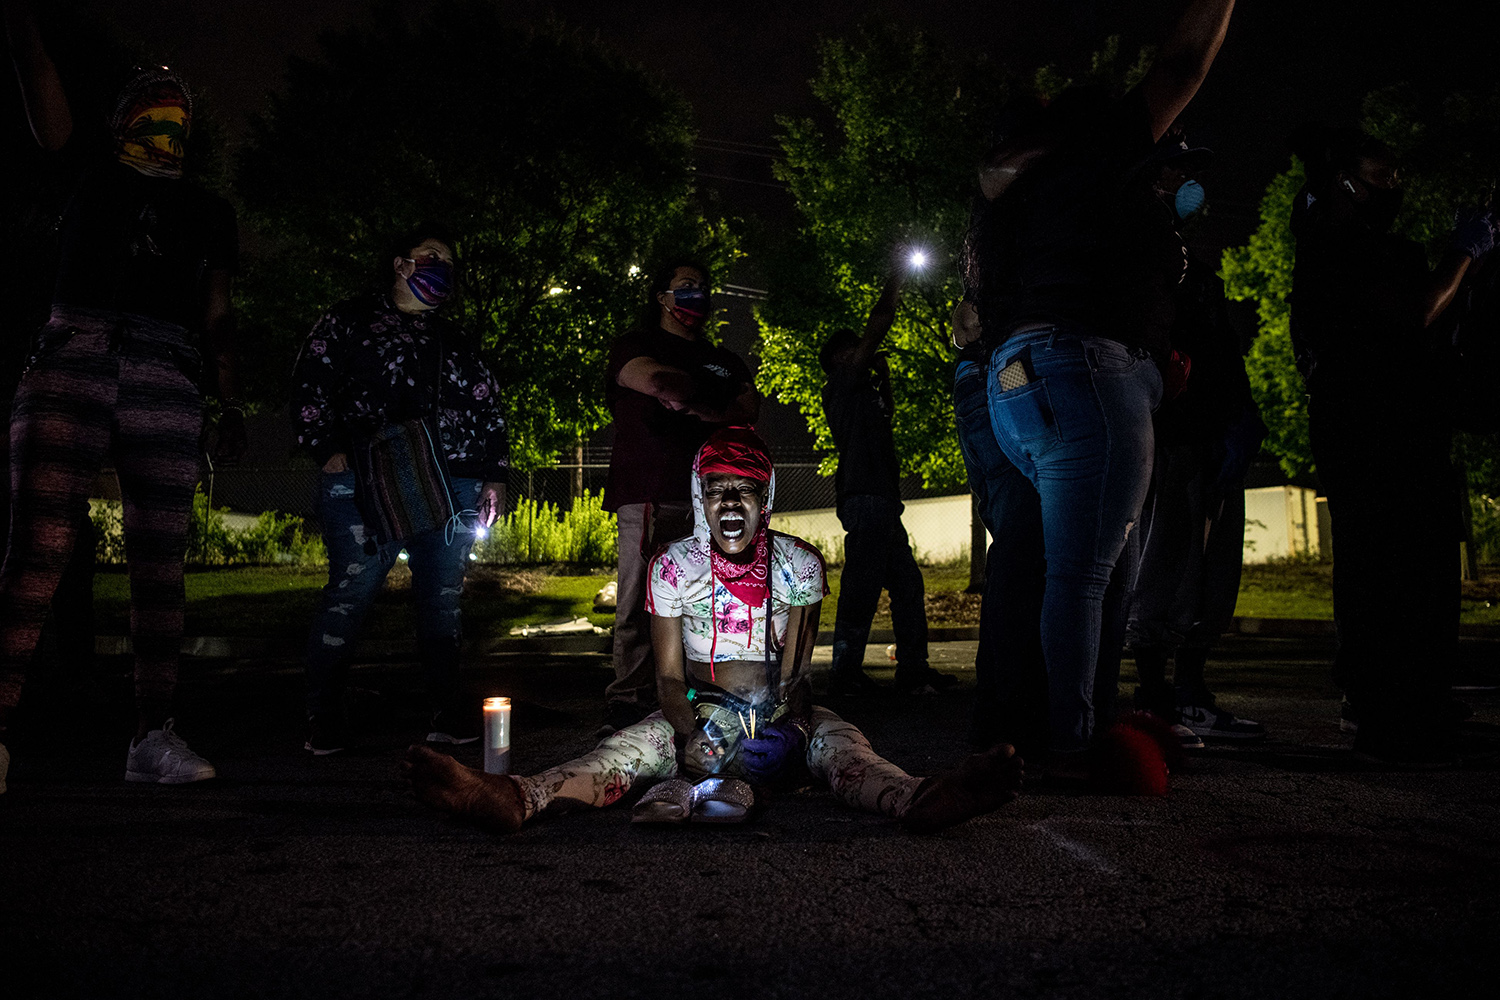 A woman shouts in Atlanta on June 15 as she protests outside a burned Wendy's restaurant following the police shooting death of Rayshard Brooks in the restaurant parking lot three days earlier. CHANDAN KHANNA/AFP via Getty Images